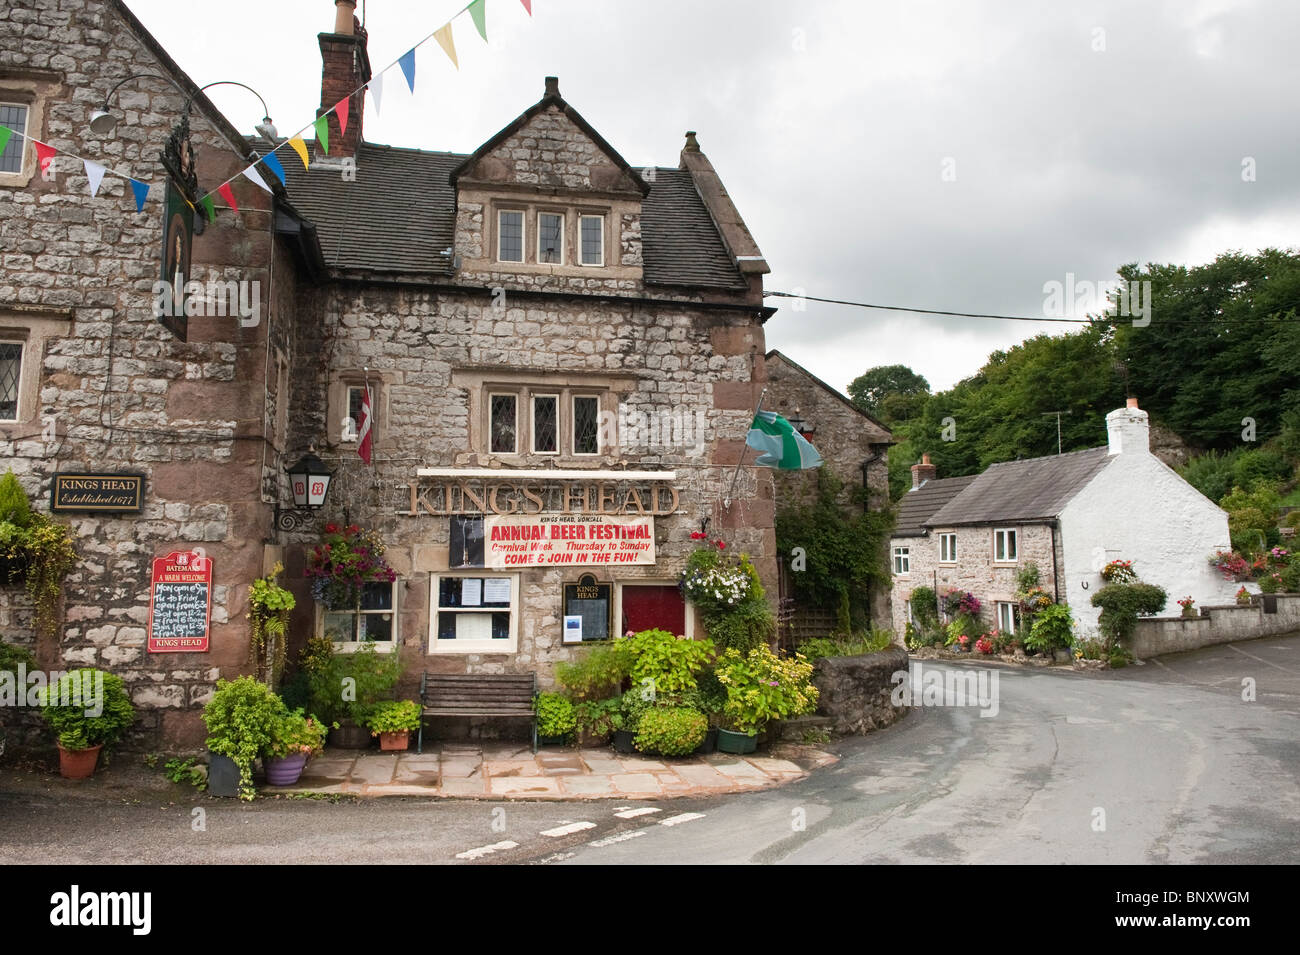 Kings head public house in Bonsall in the Peak District Derbyshire England, 'Great Britain','United - Stock Image